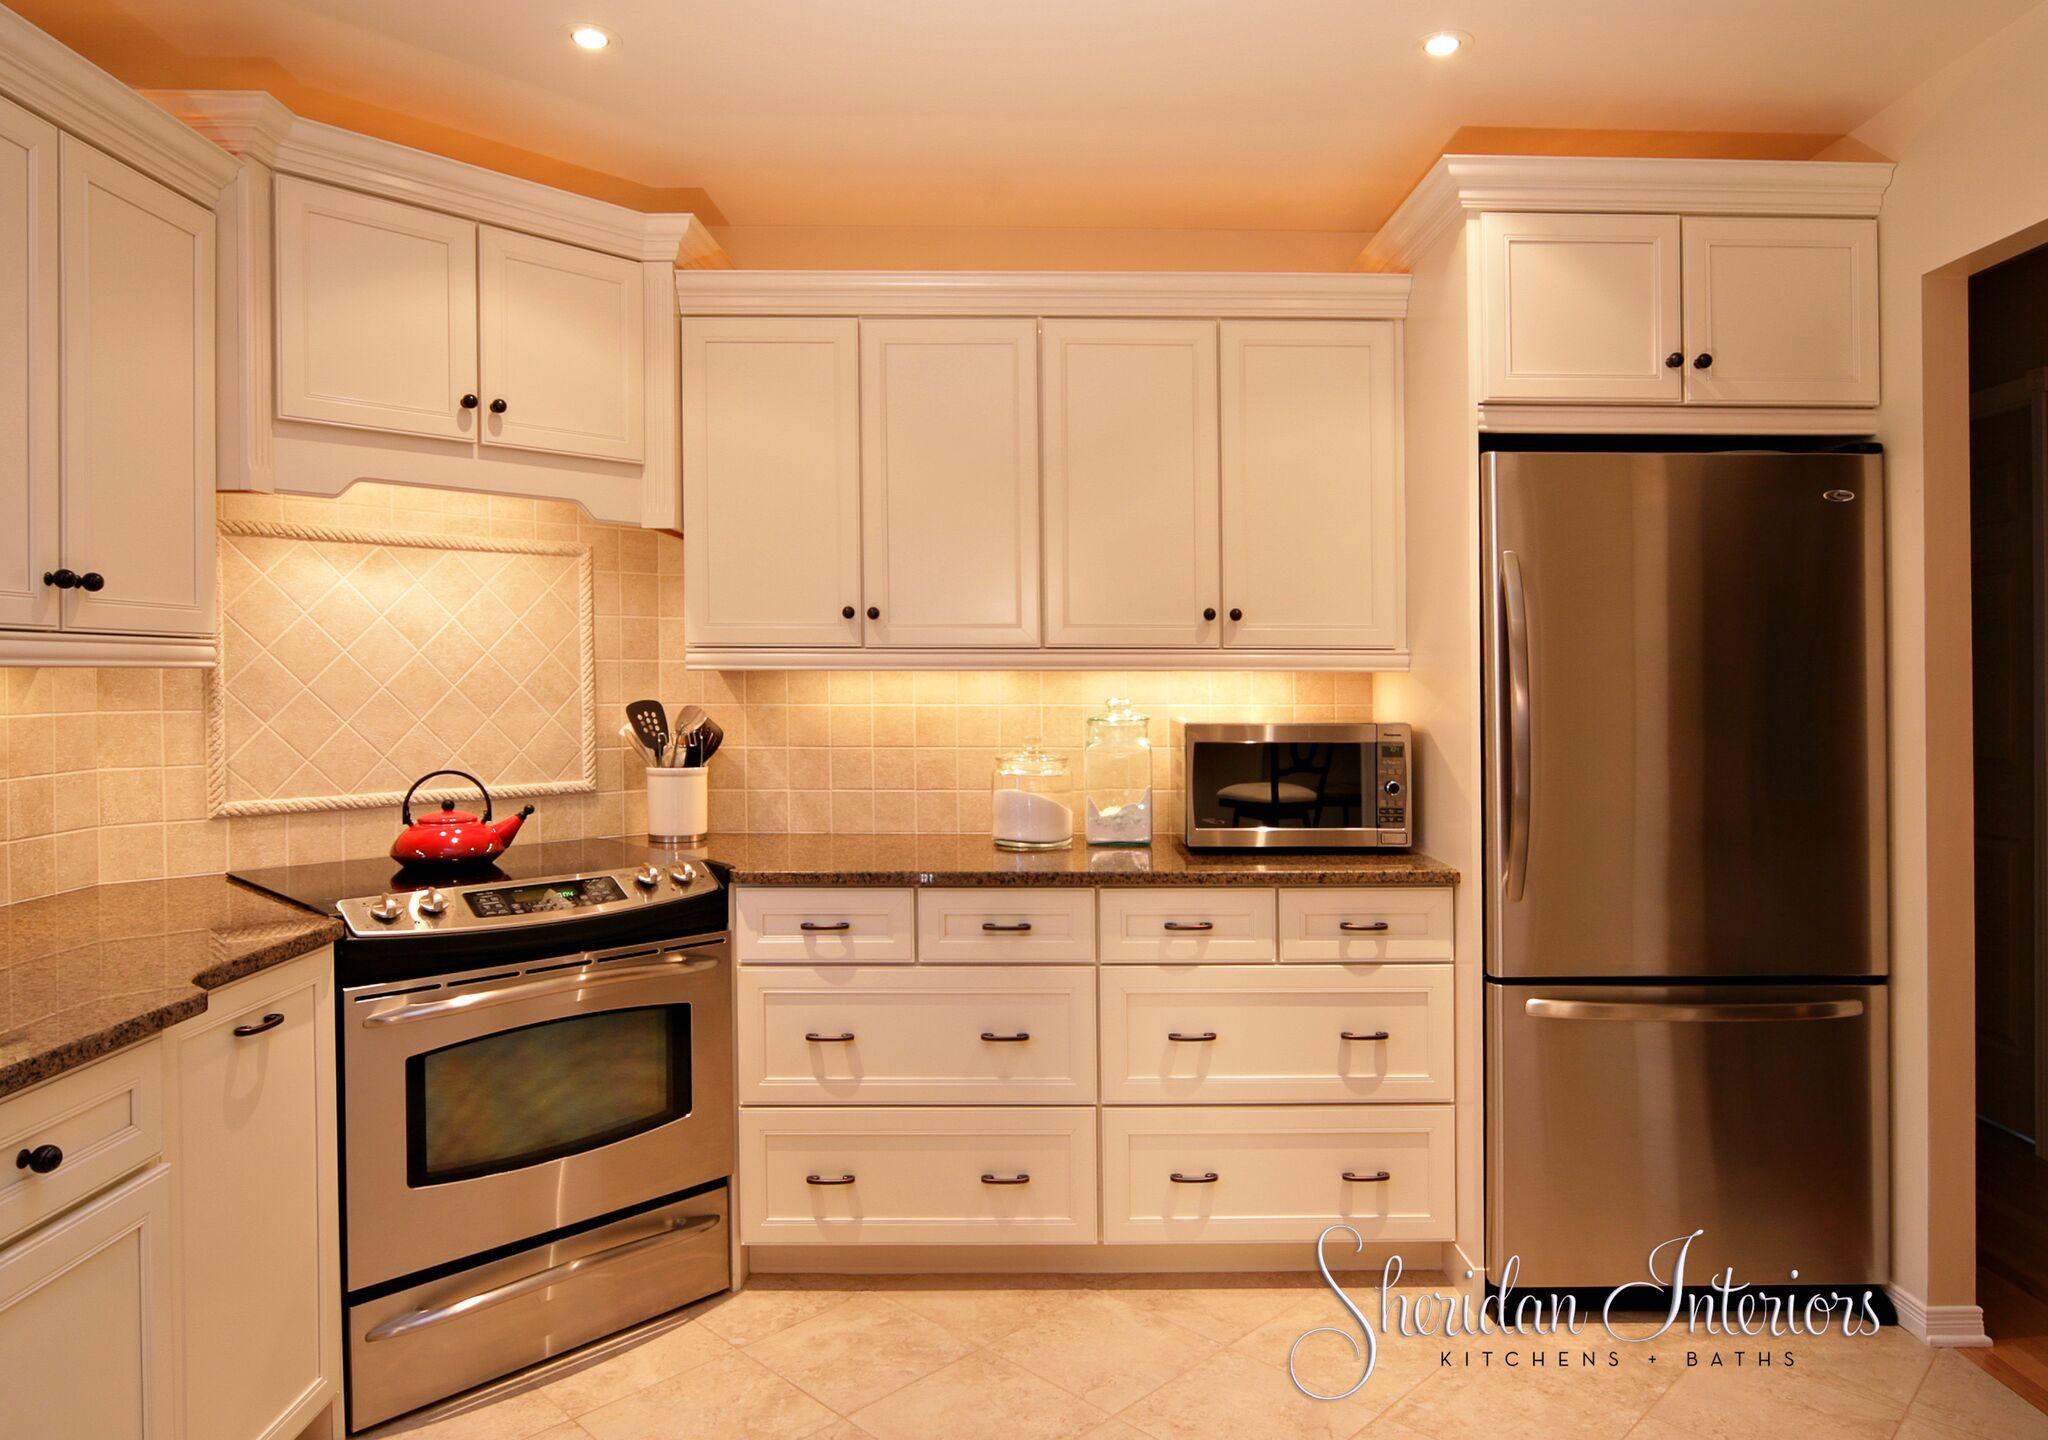 White kitchen with corner stove, countertop microwave and stainless steel fridge - Sheridan Interiors